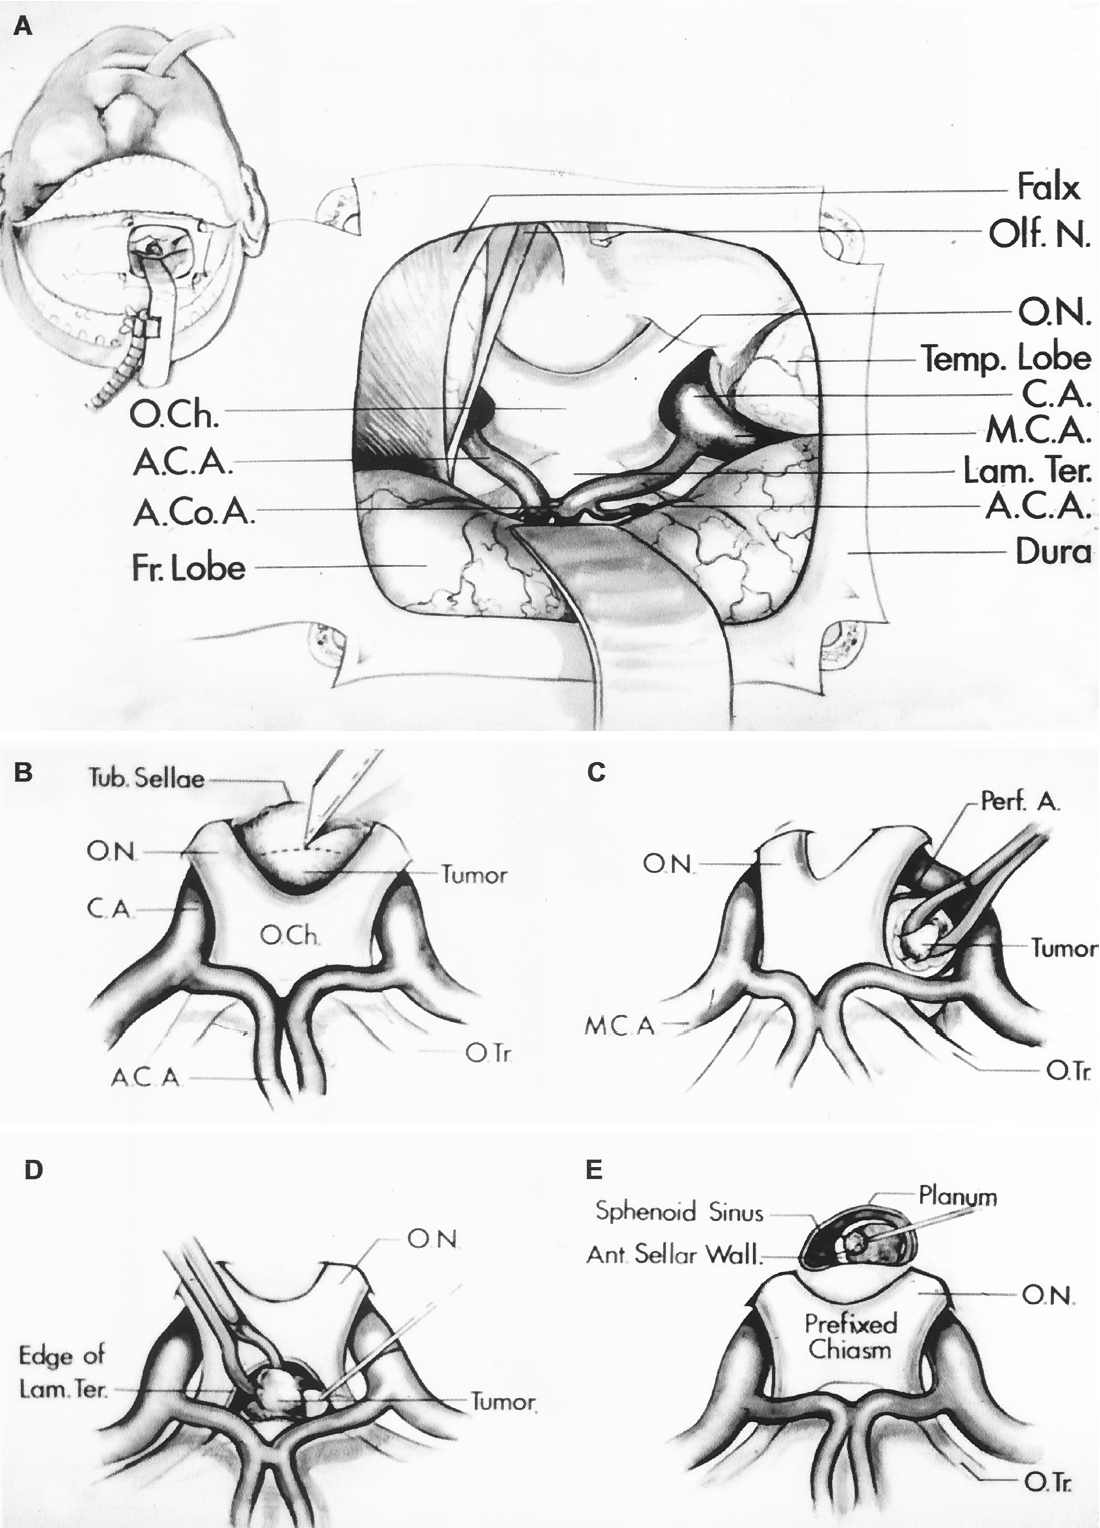 Figure 8.22. Subfrontal approach to the anteroinferior part of the third ventricle. A, Left: Scalp incision, right frontal bone flap, dural incision, and placement of self retaining retractor. Right: Intracranial exposure with the frontal lobe retracted. The optic nerves, optic chiasm, and optic tracts are stretched upward if a tumor is present. The right olfactory nerve has been divided, but the left one is intact. The anterior cerebral and anterior communicating arteries cross the optic tracts and the lamina terminalis. The temporal lobe and the carotid and middle cerebral arteries are lateral to the optic chiasm. B–E, different subfrontal approaches to the anteroinferior part of the third ventricle. B, subchiasmatic approach. The tumor is exposed between the optic nerves, the optic chiasm, and the tuberculum sellae. A knife incises the tumor capsule. C, opticocarotid approach. This approach is directed through the interval between the optic nerve and the anterior cerebral and carotid arteries. A cup forceps reaches through a hole in the tumor capsule. Perforating arteries cross the interval between the carotid artery and the optic nerve. D, lamina terminalis approach. The lamina terminalis is above the optic chiasm and between the optic tracts. The lamina terminalis has been opened, and a cup forceps reaches between its edges to remove tumor in the anteroinferior part of the third ventricle. E, transfrontal-transsphenoidal approach. A prefixed optic chiasm blocks the subchiasmatic approach to a tumor. The tumor is exposed by removing the posterior part of the planum sphenoidale and the tuberculum sellae to expose the sphenoid sinus. The sinus mucosa is depressed inferiorly and the anterior sellar wall is removed to expose the tumor. A., artery; A.C.A., anterior cerebral artery; A.Co.A., anterior communicating artery; Ant., anterior; C.A., carotid artery; Fr., frontal; Lam., lamina; M.C.A., middle cerebral artery; N., nerve; O.Ch., optic chiasm; Olf., olfactory; O